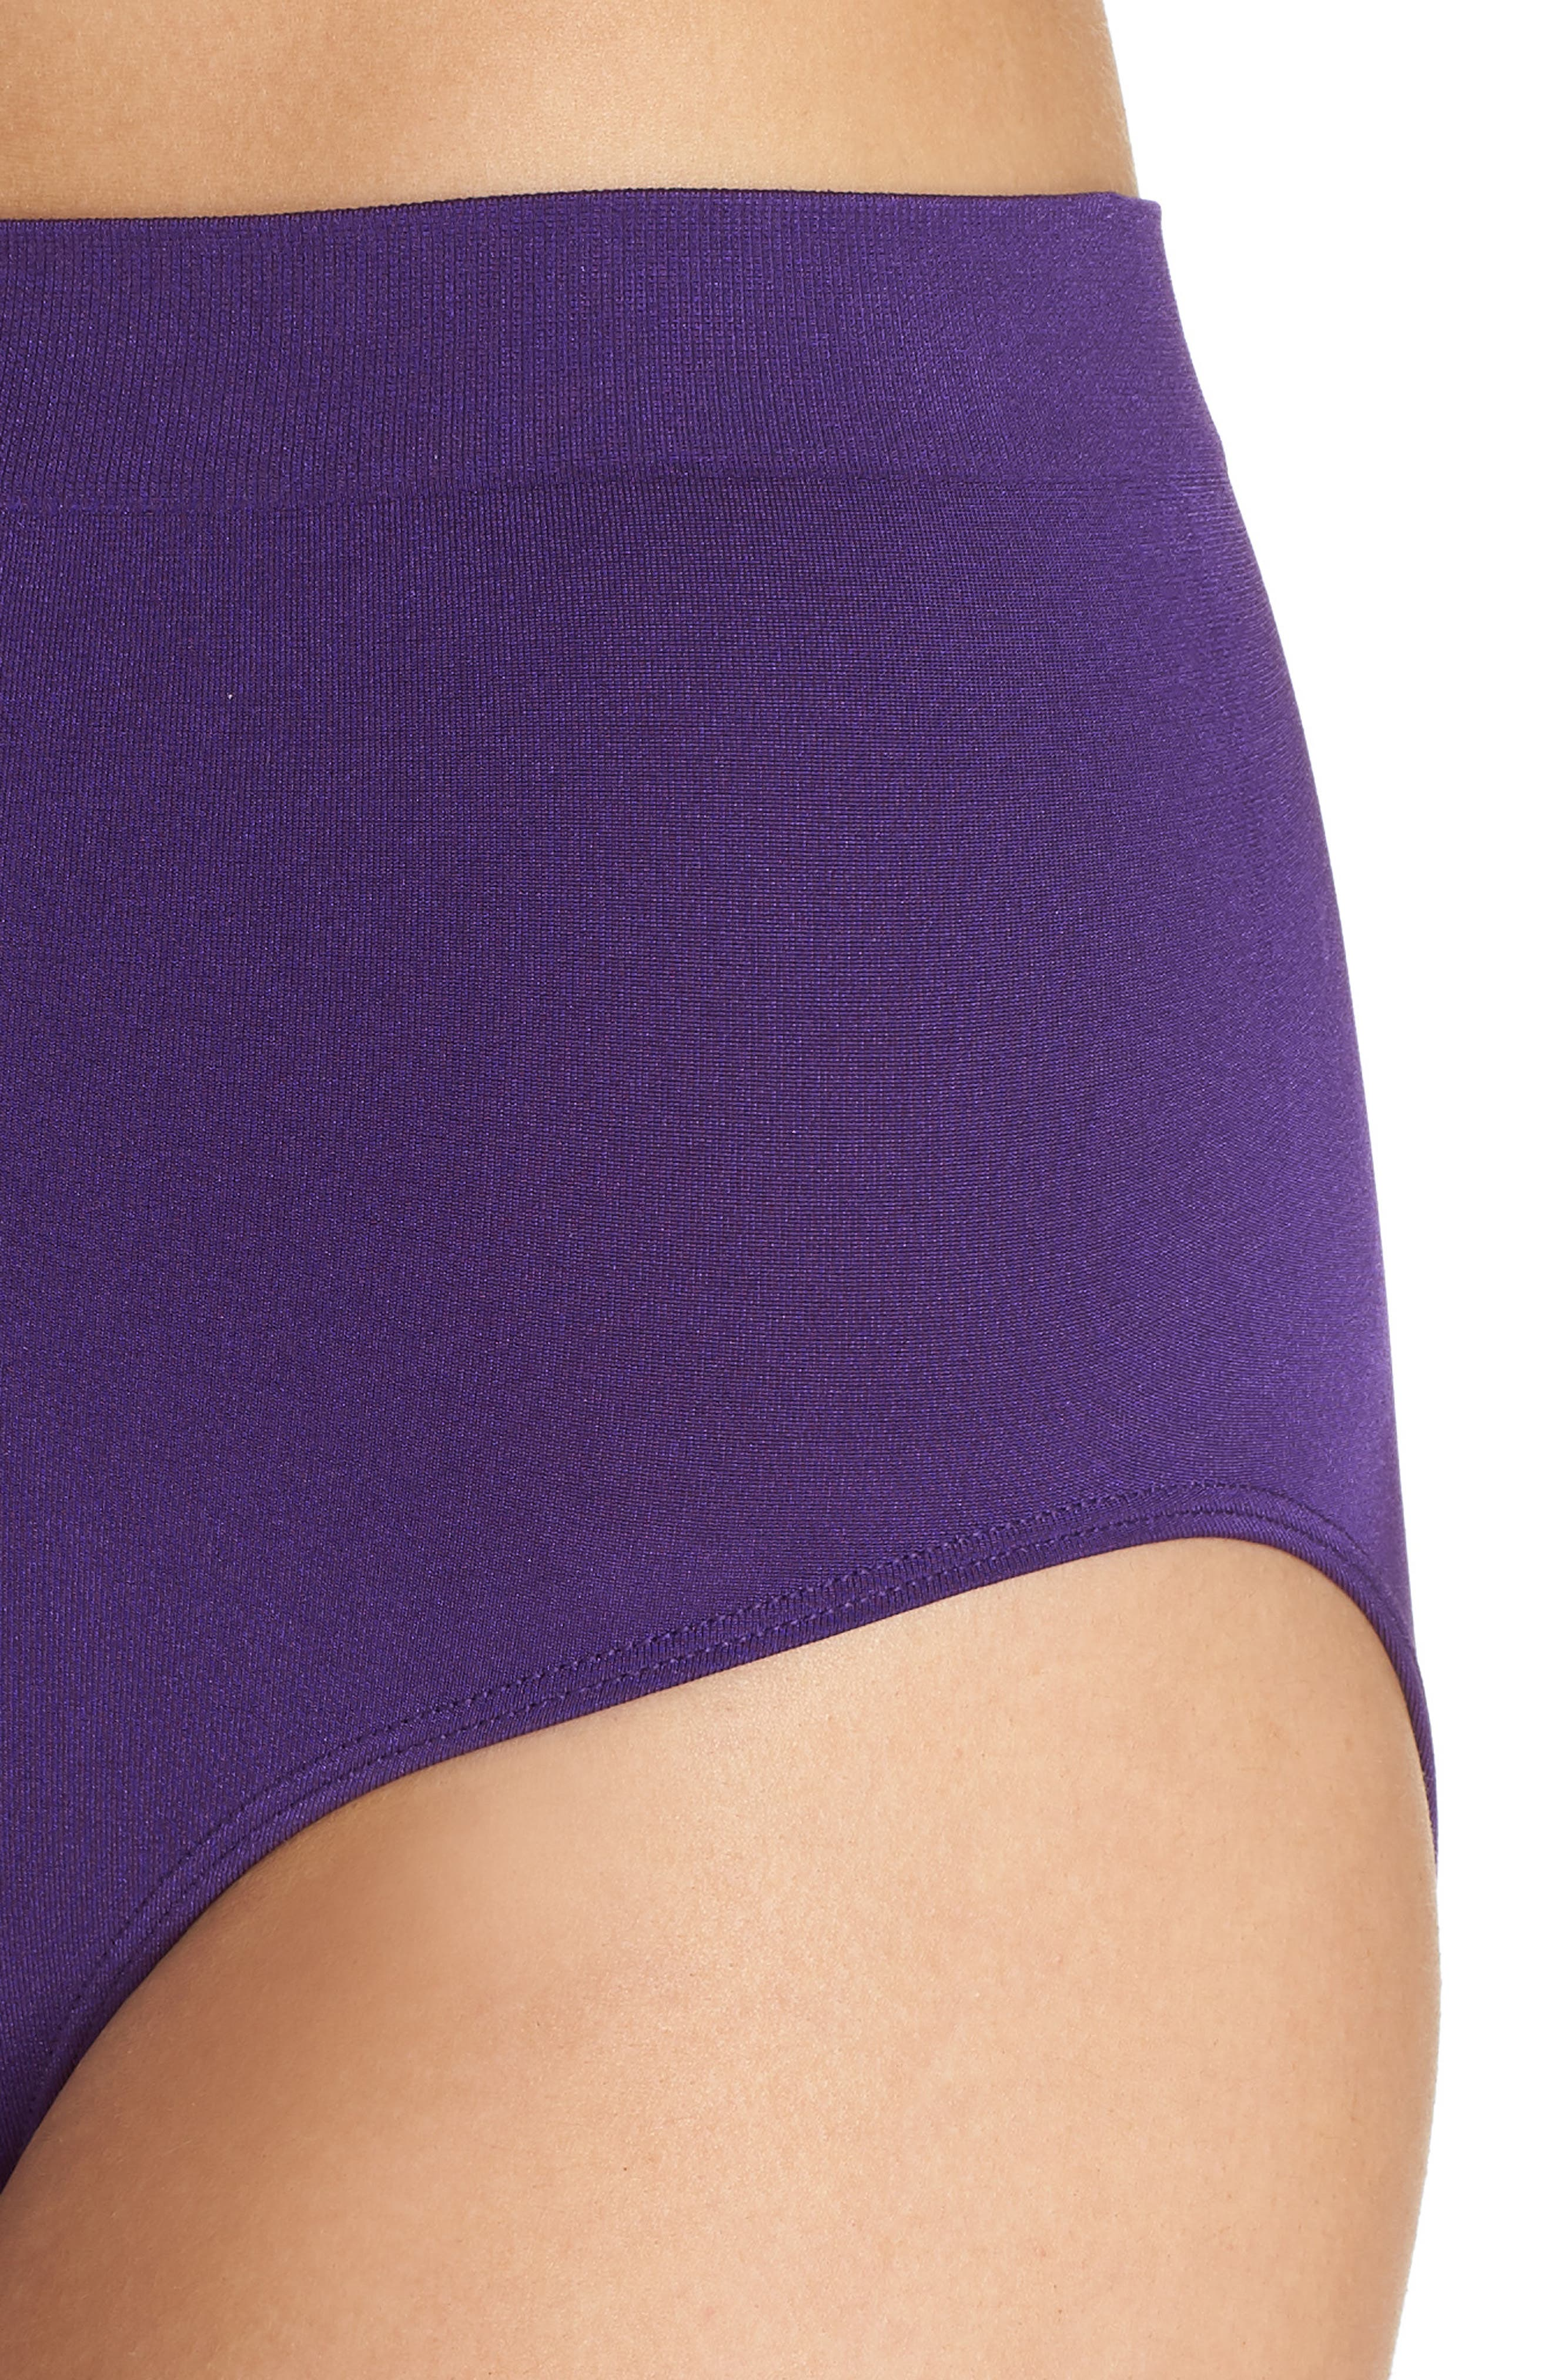 B Smooth Briefs,                             Alternate thumbnail 195, color,